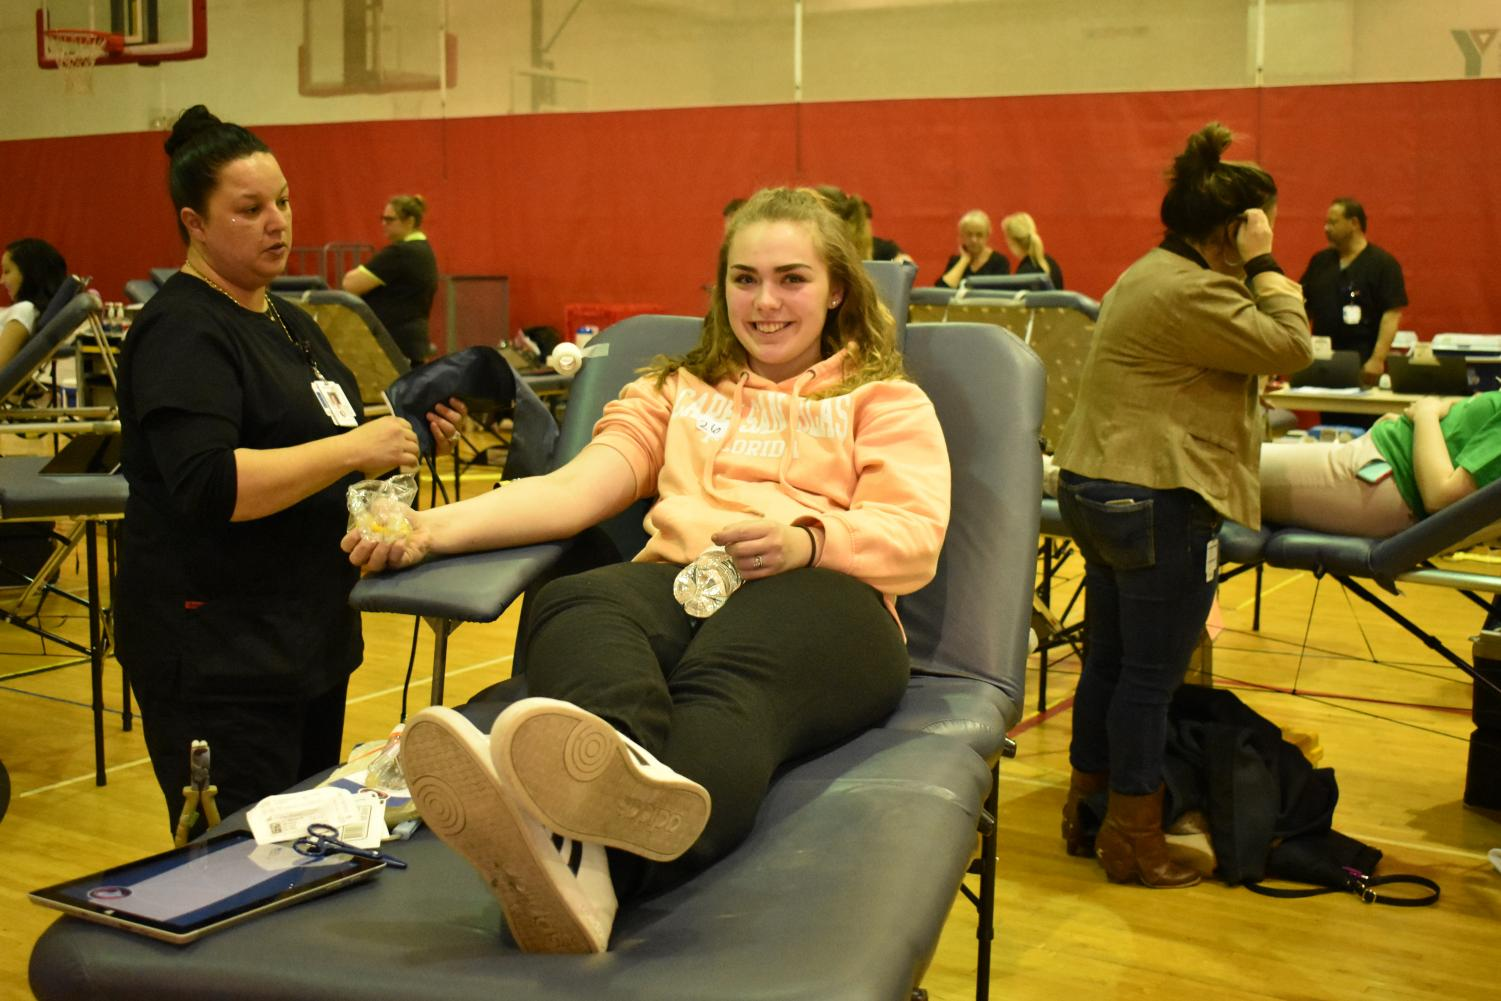 One last drop for the Mississippi Valley Regional Blood Center